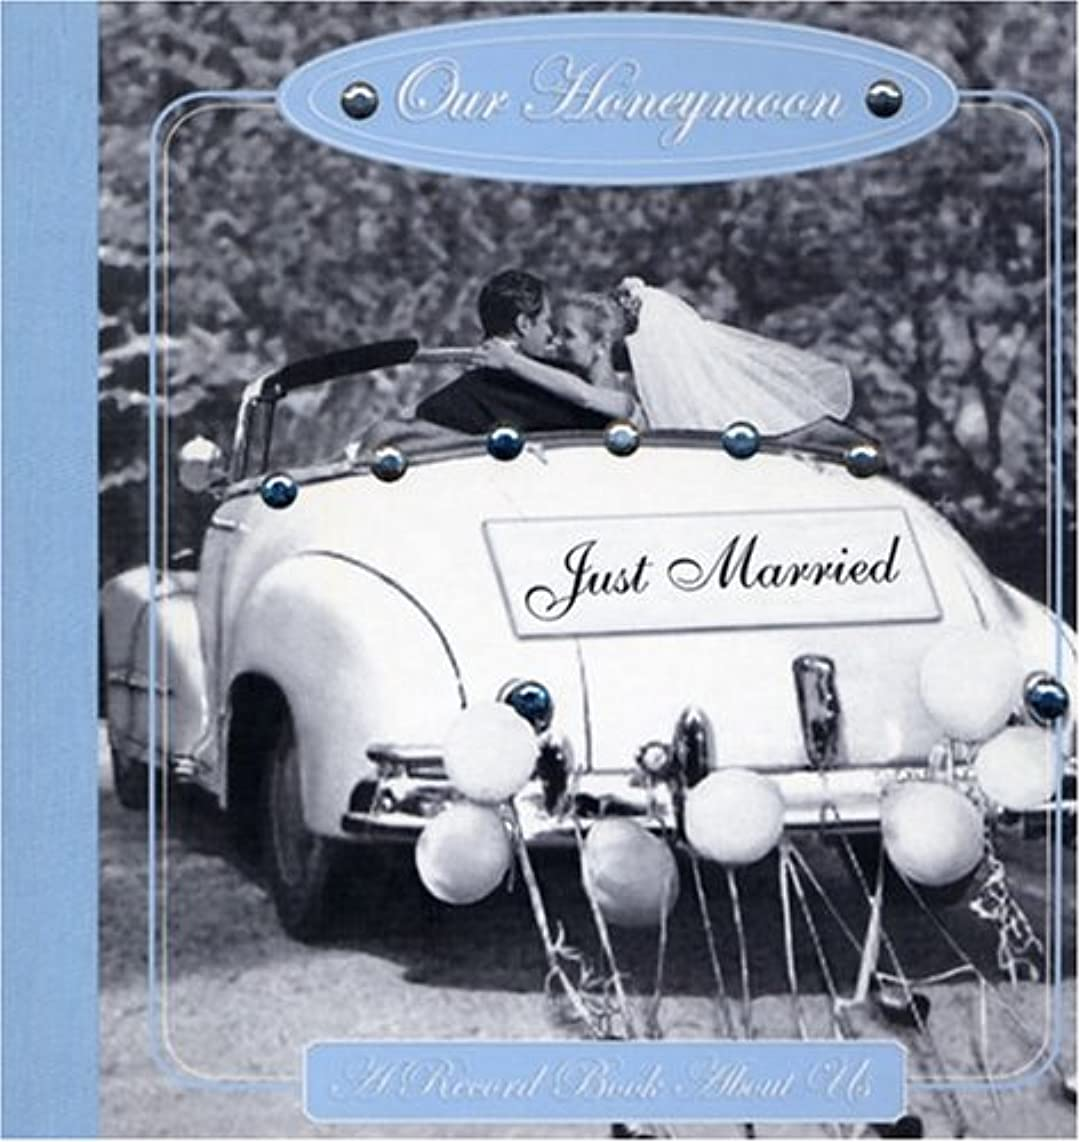 Our Honeymoon Record Book